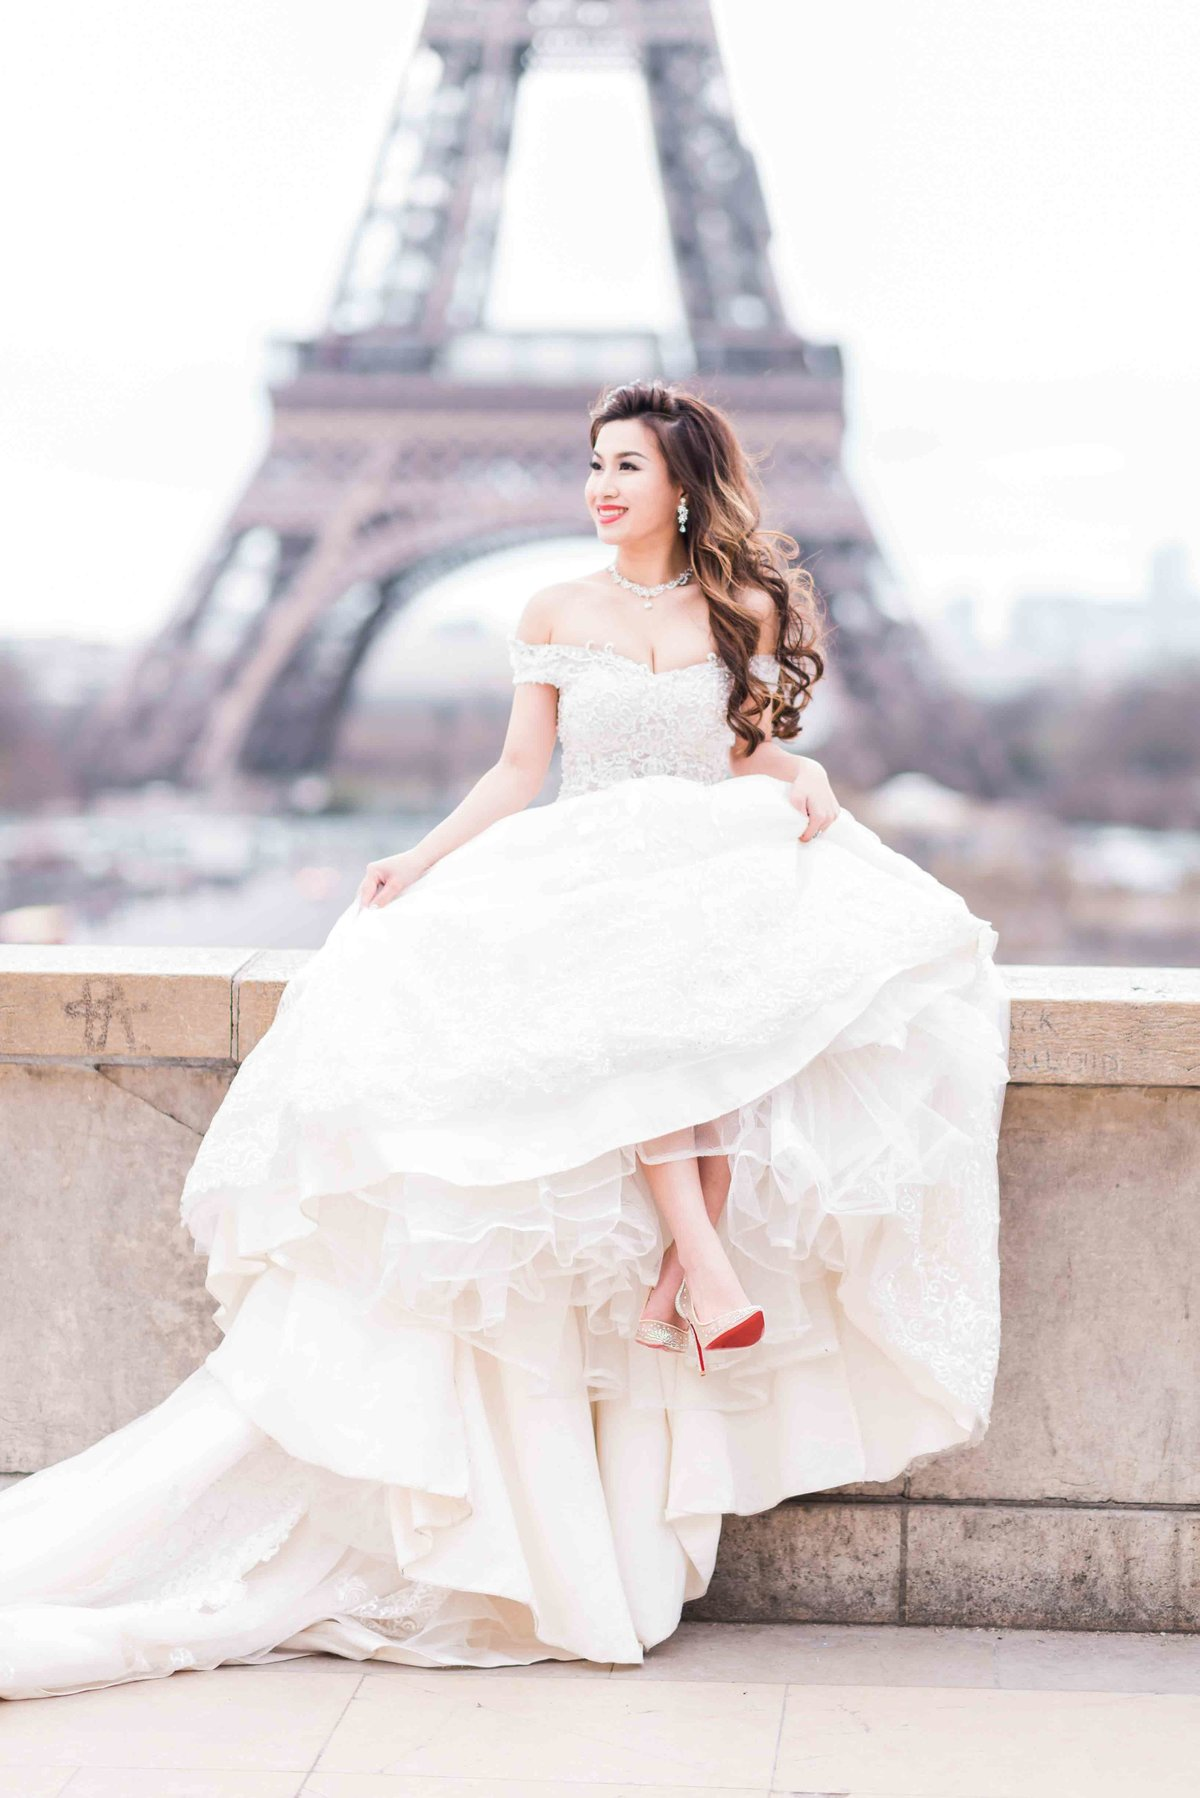 laure_lalliard_design_ClaireMorrisPhoto_eiffel_tower_paris_asian_bride